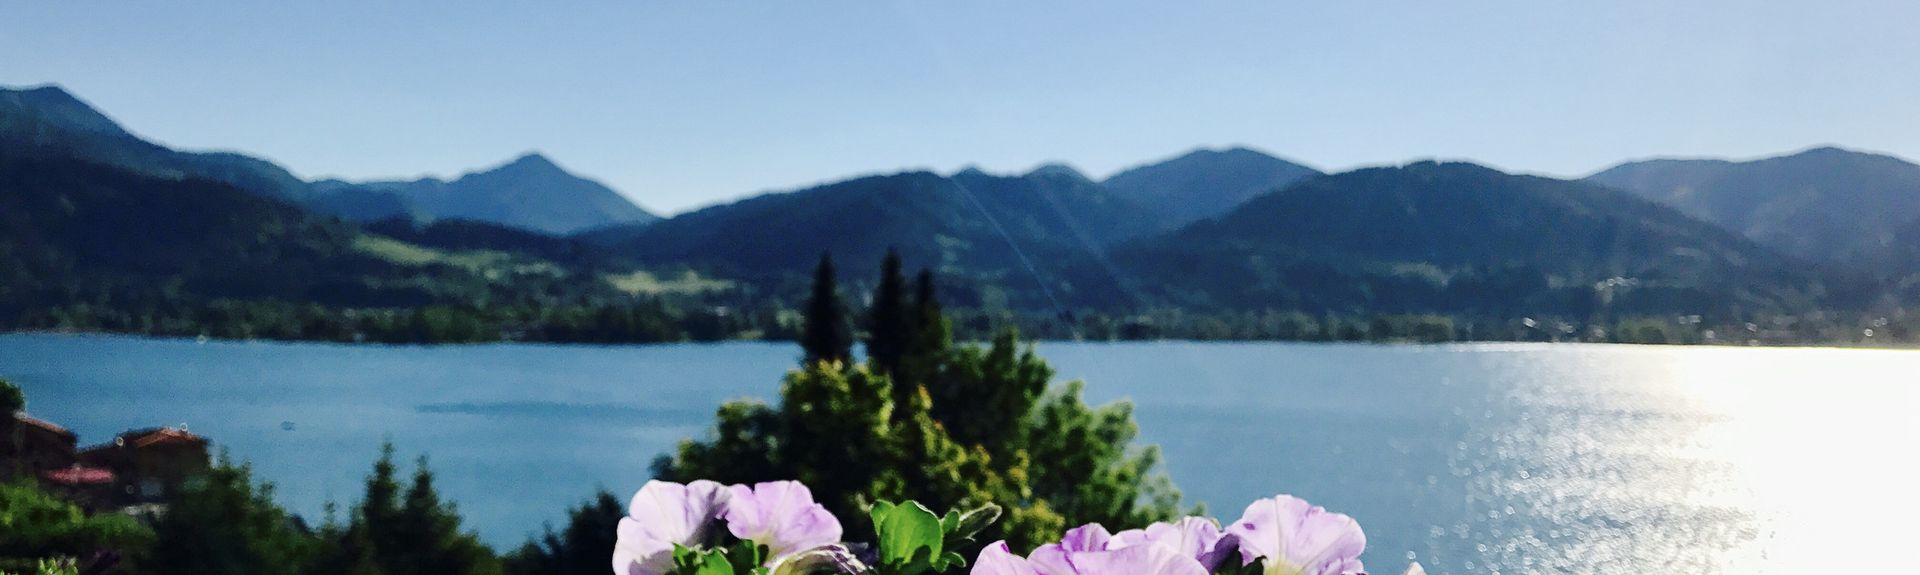 Gmund am Tegernsee, Germany